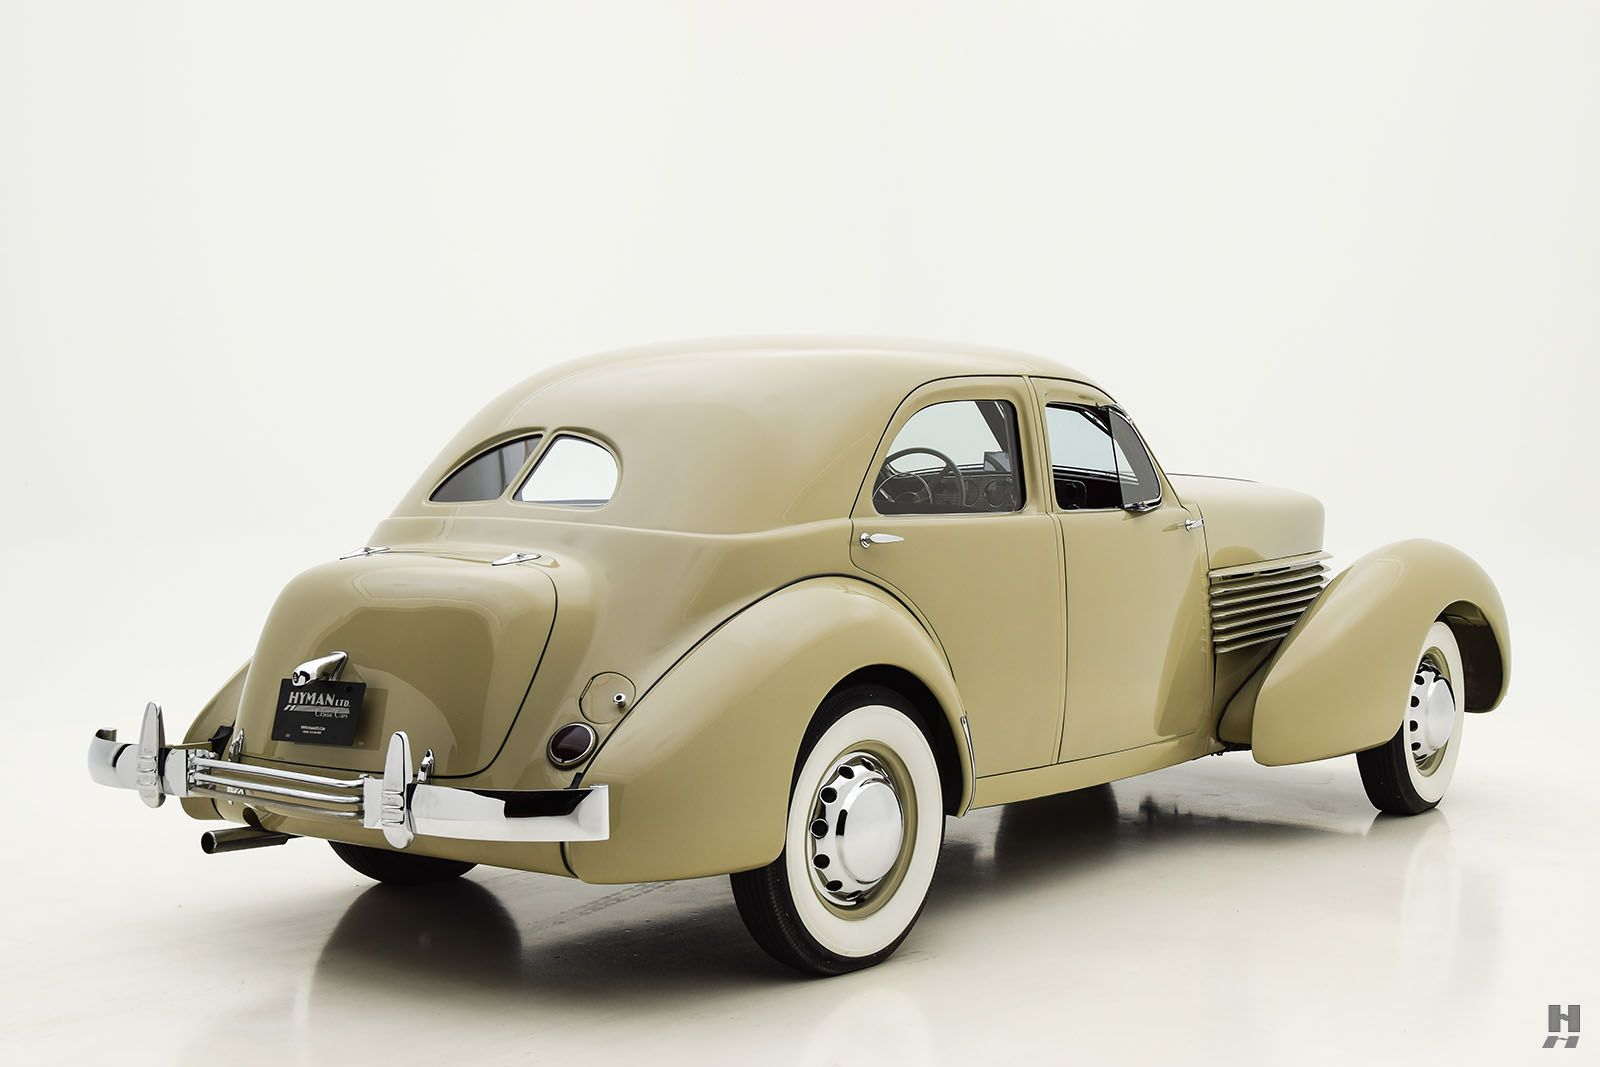 1937 Cord 812 Beverly Classic Car For Sale | Buy 1937 Cord 812 ...